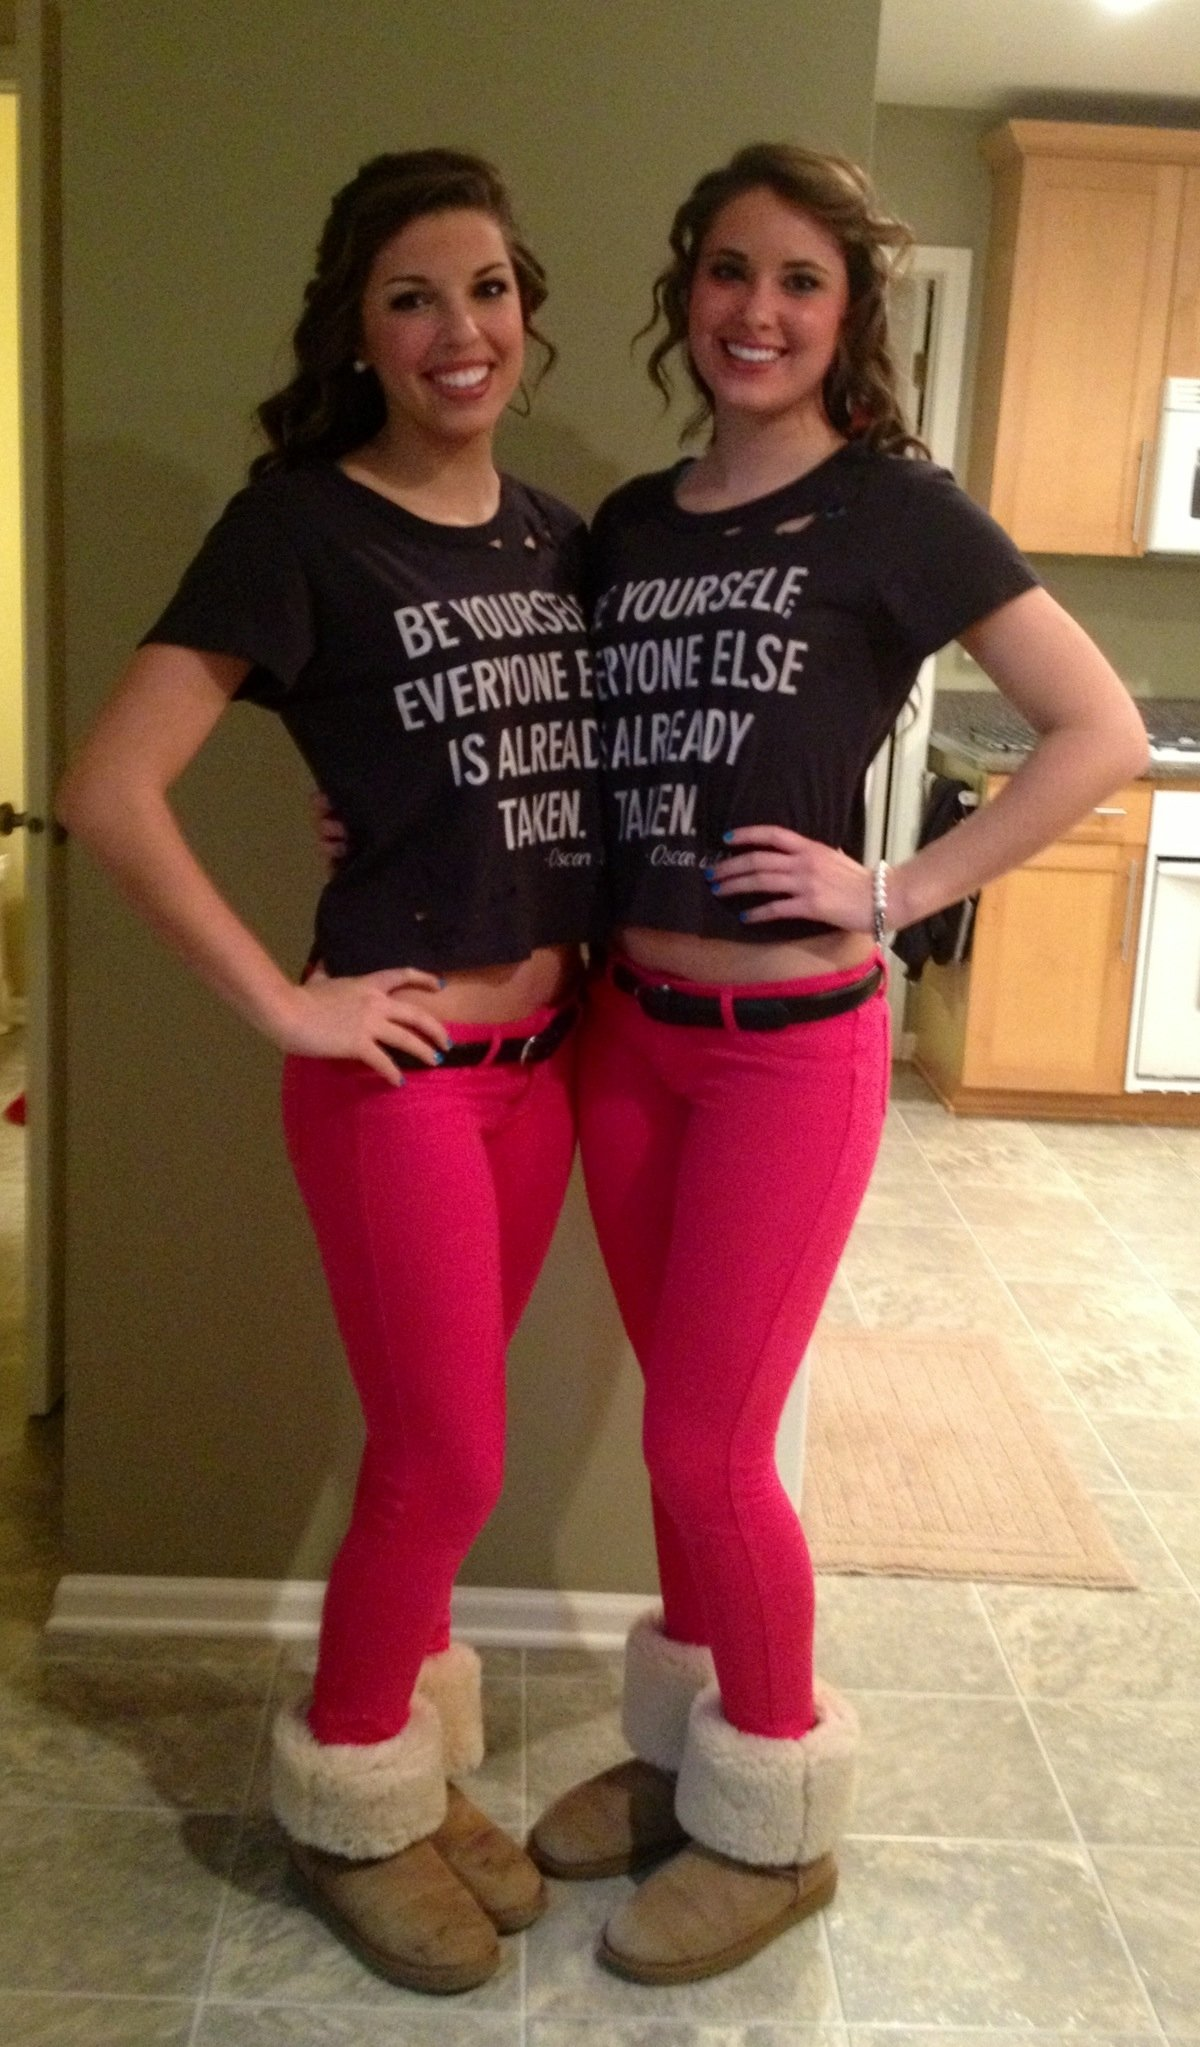 10 Lovable Halloween Costume Ideas For 2 People best friend twins 3 funny halloween costumes funny stuff 3 2020